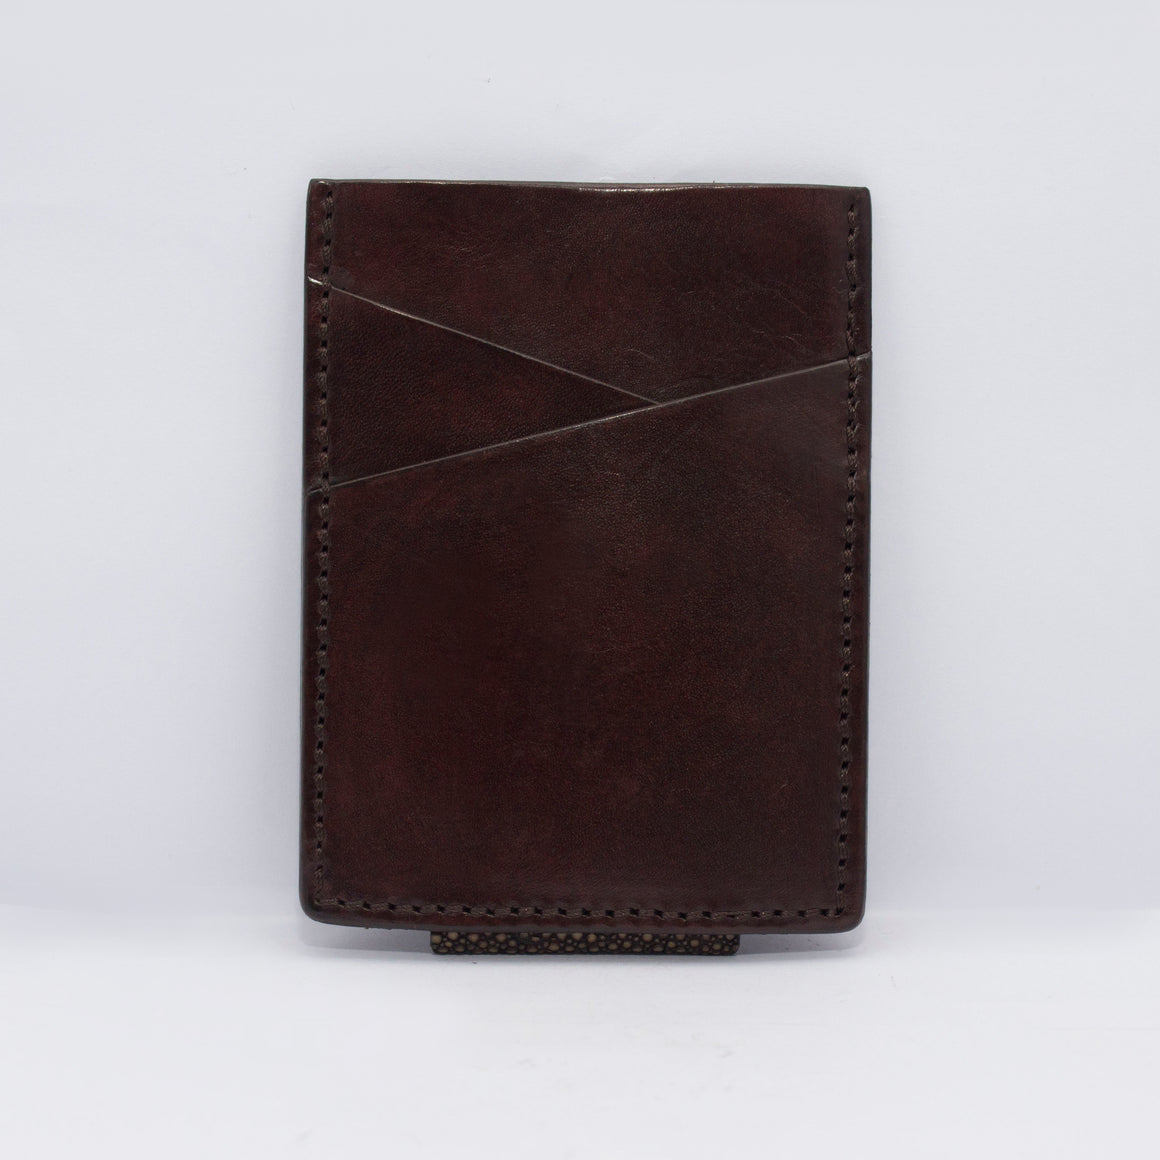 STINGRAY MONEY CLIP WALLET CARD IN DRAK BROWN